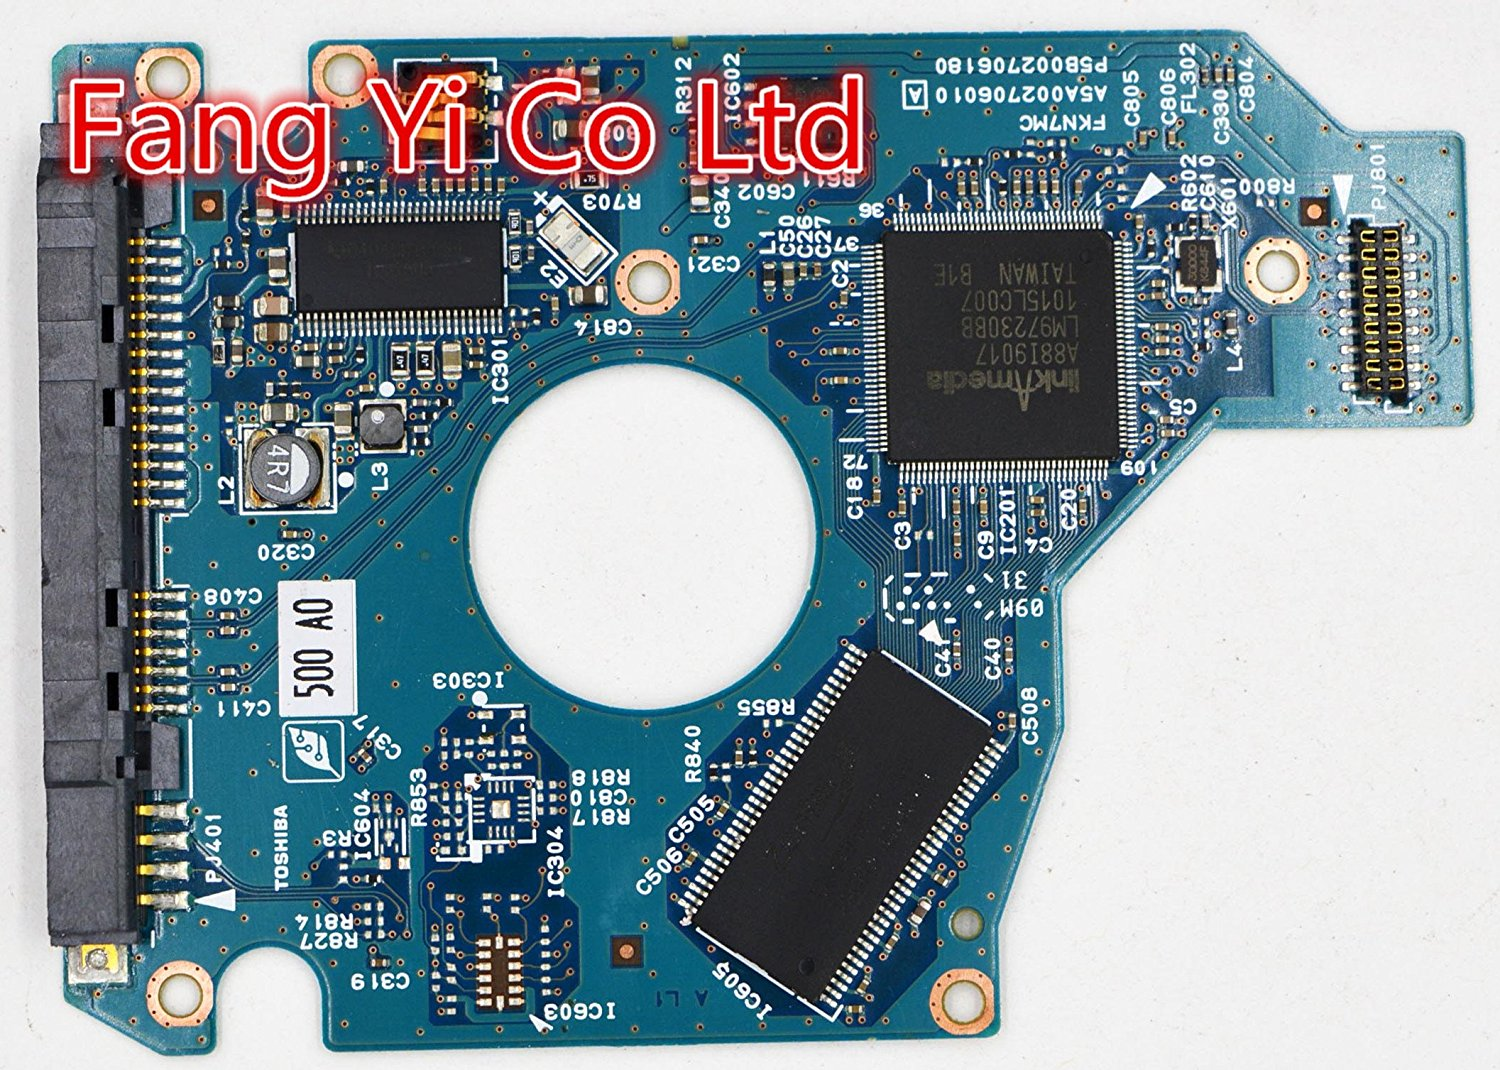 HDD PCB for Toshiba /Logic Board/Board Number: G002706A / HDD2H83,HDD2D30,HDD2H81,HDD2L53,HDD2J12,HDD2J13,HDD2H85,HDD2H84,HDD2L52